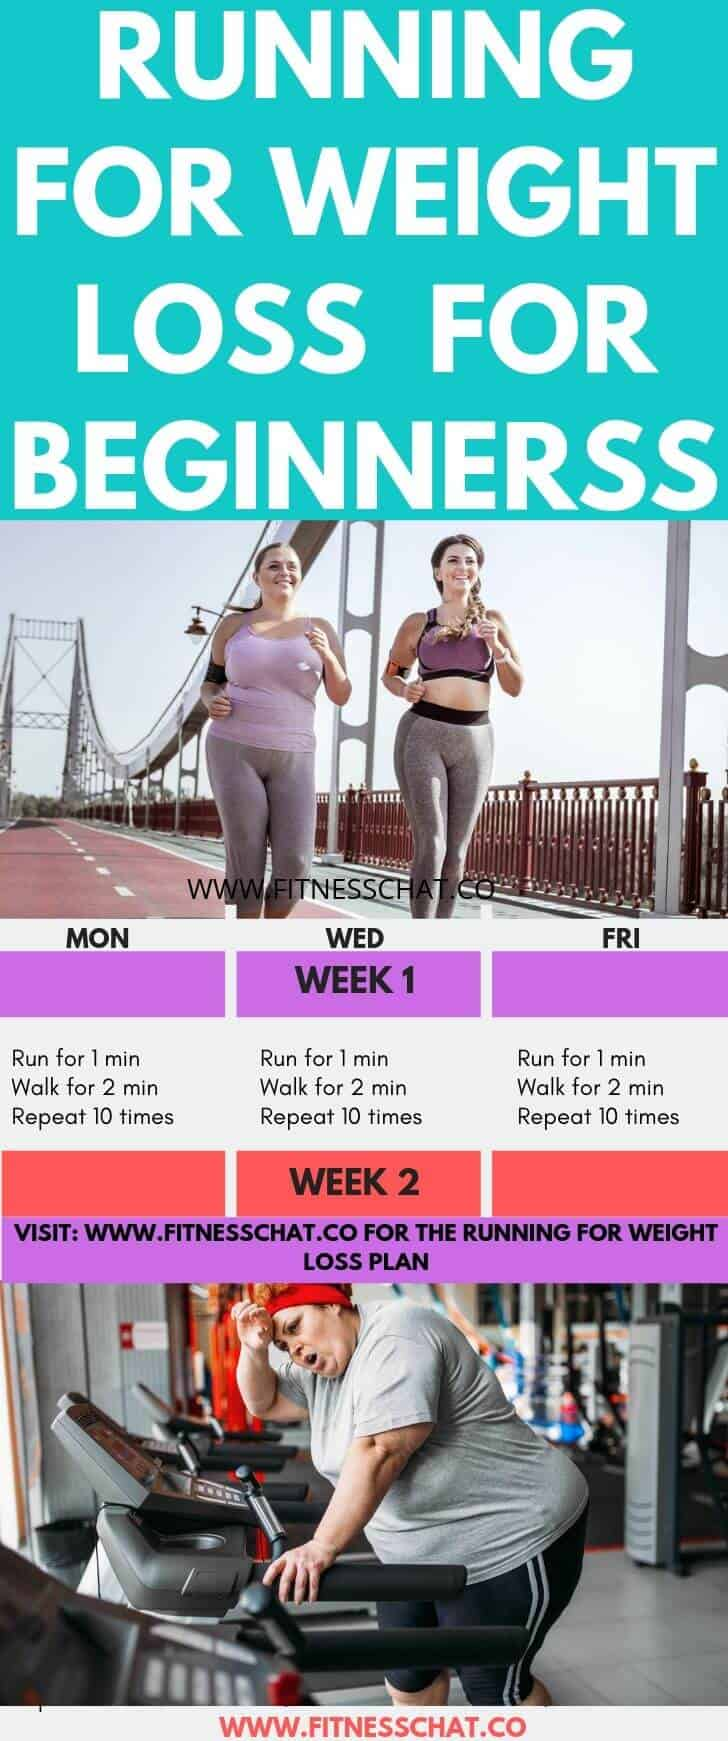 8 week running plan for weight loss